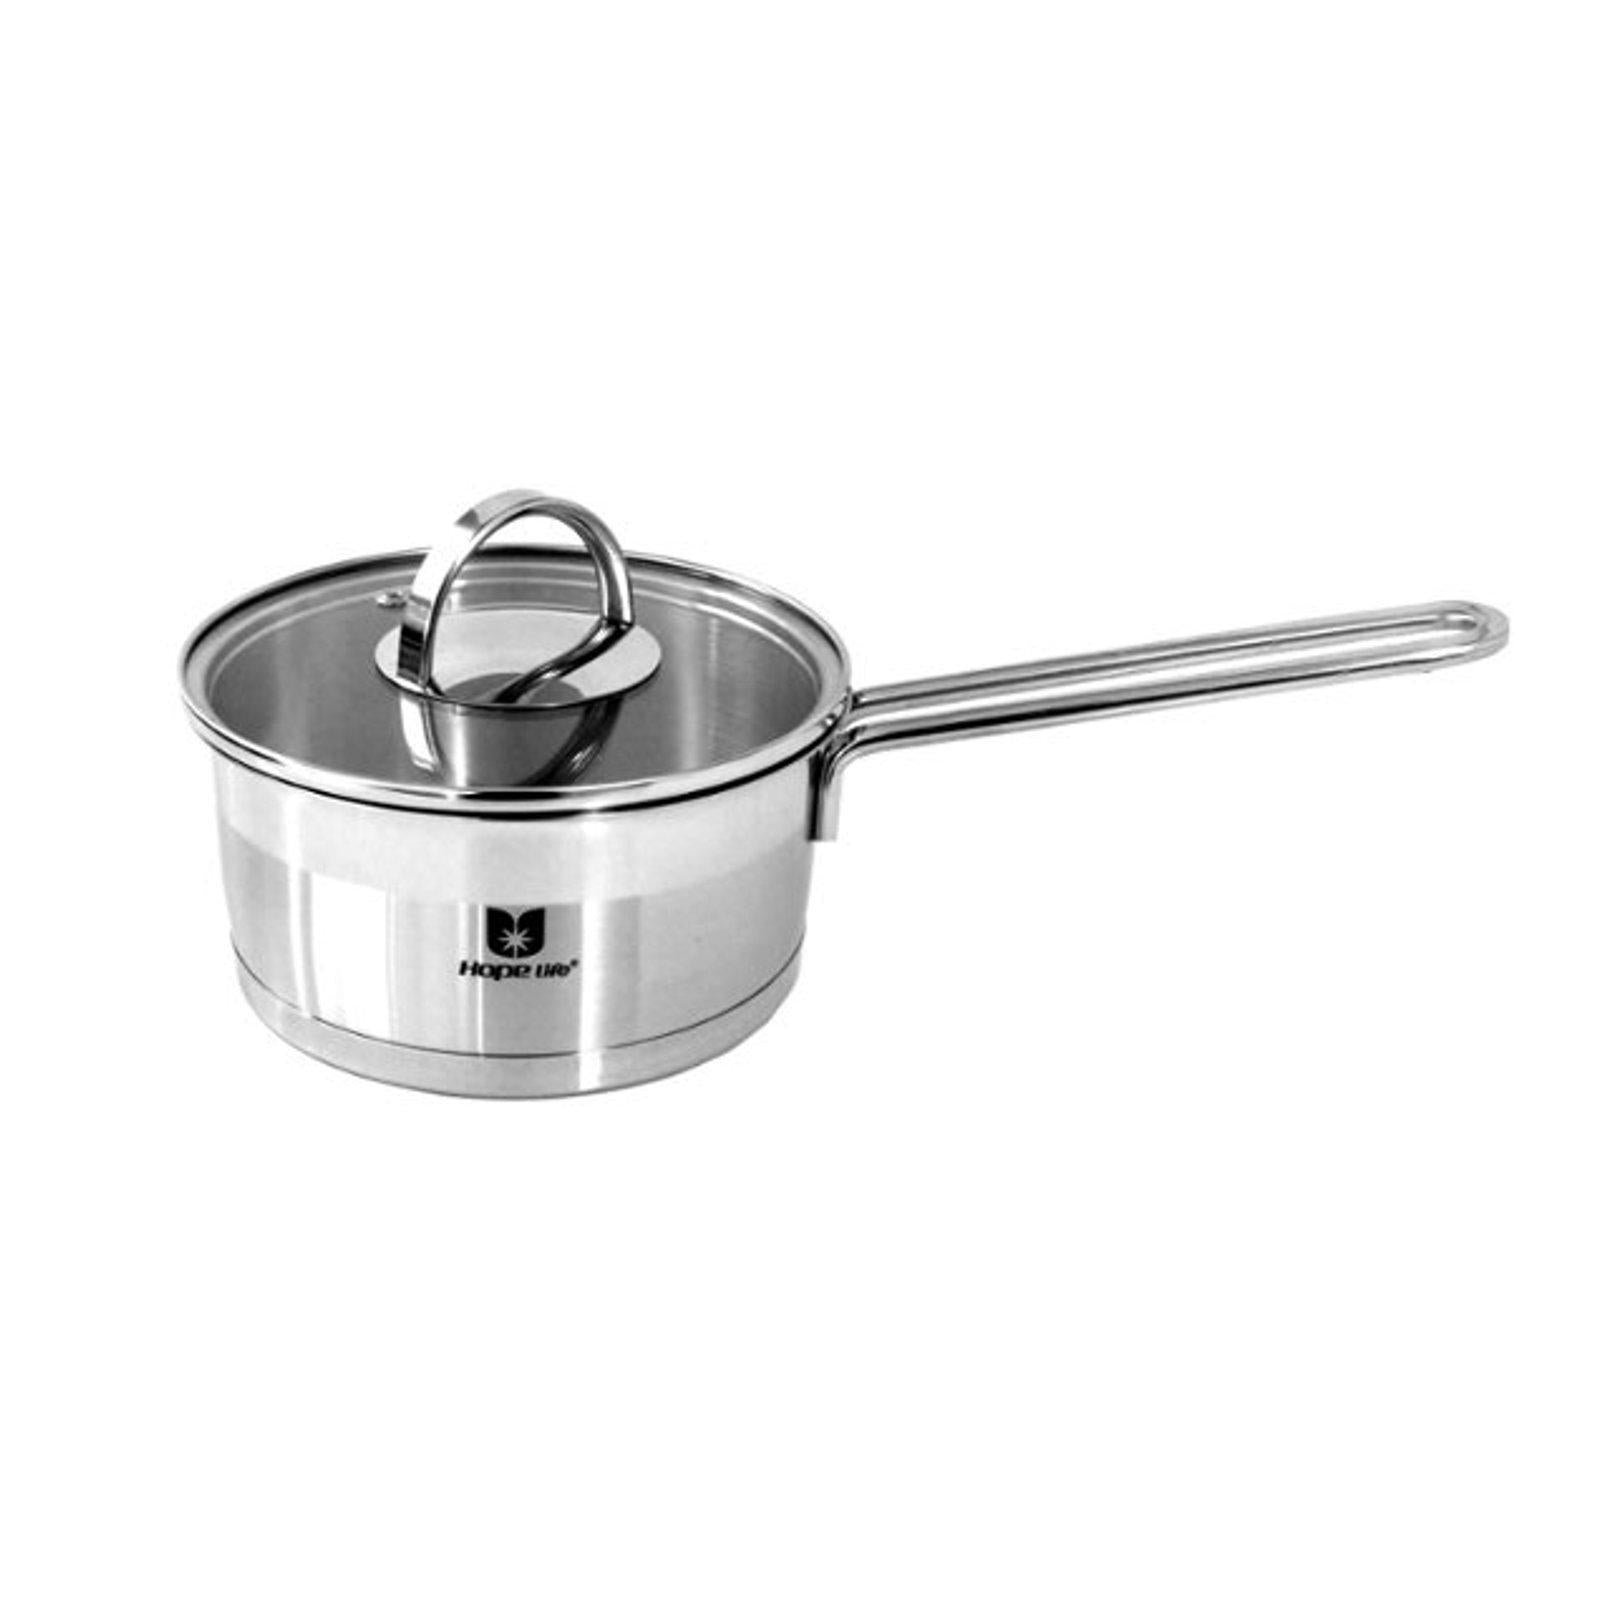 16 Cm Wire Handle Stainless Steel Induction Saucepan-Stainless Steel Cookware-Chef's Quality Cookware